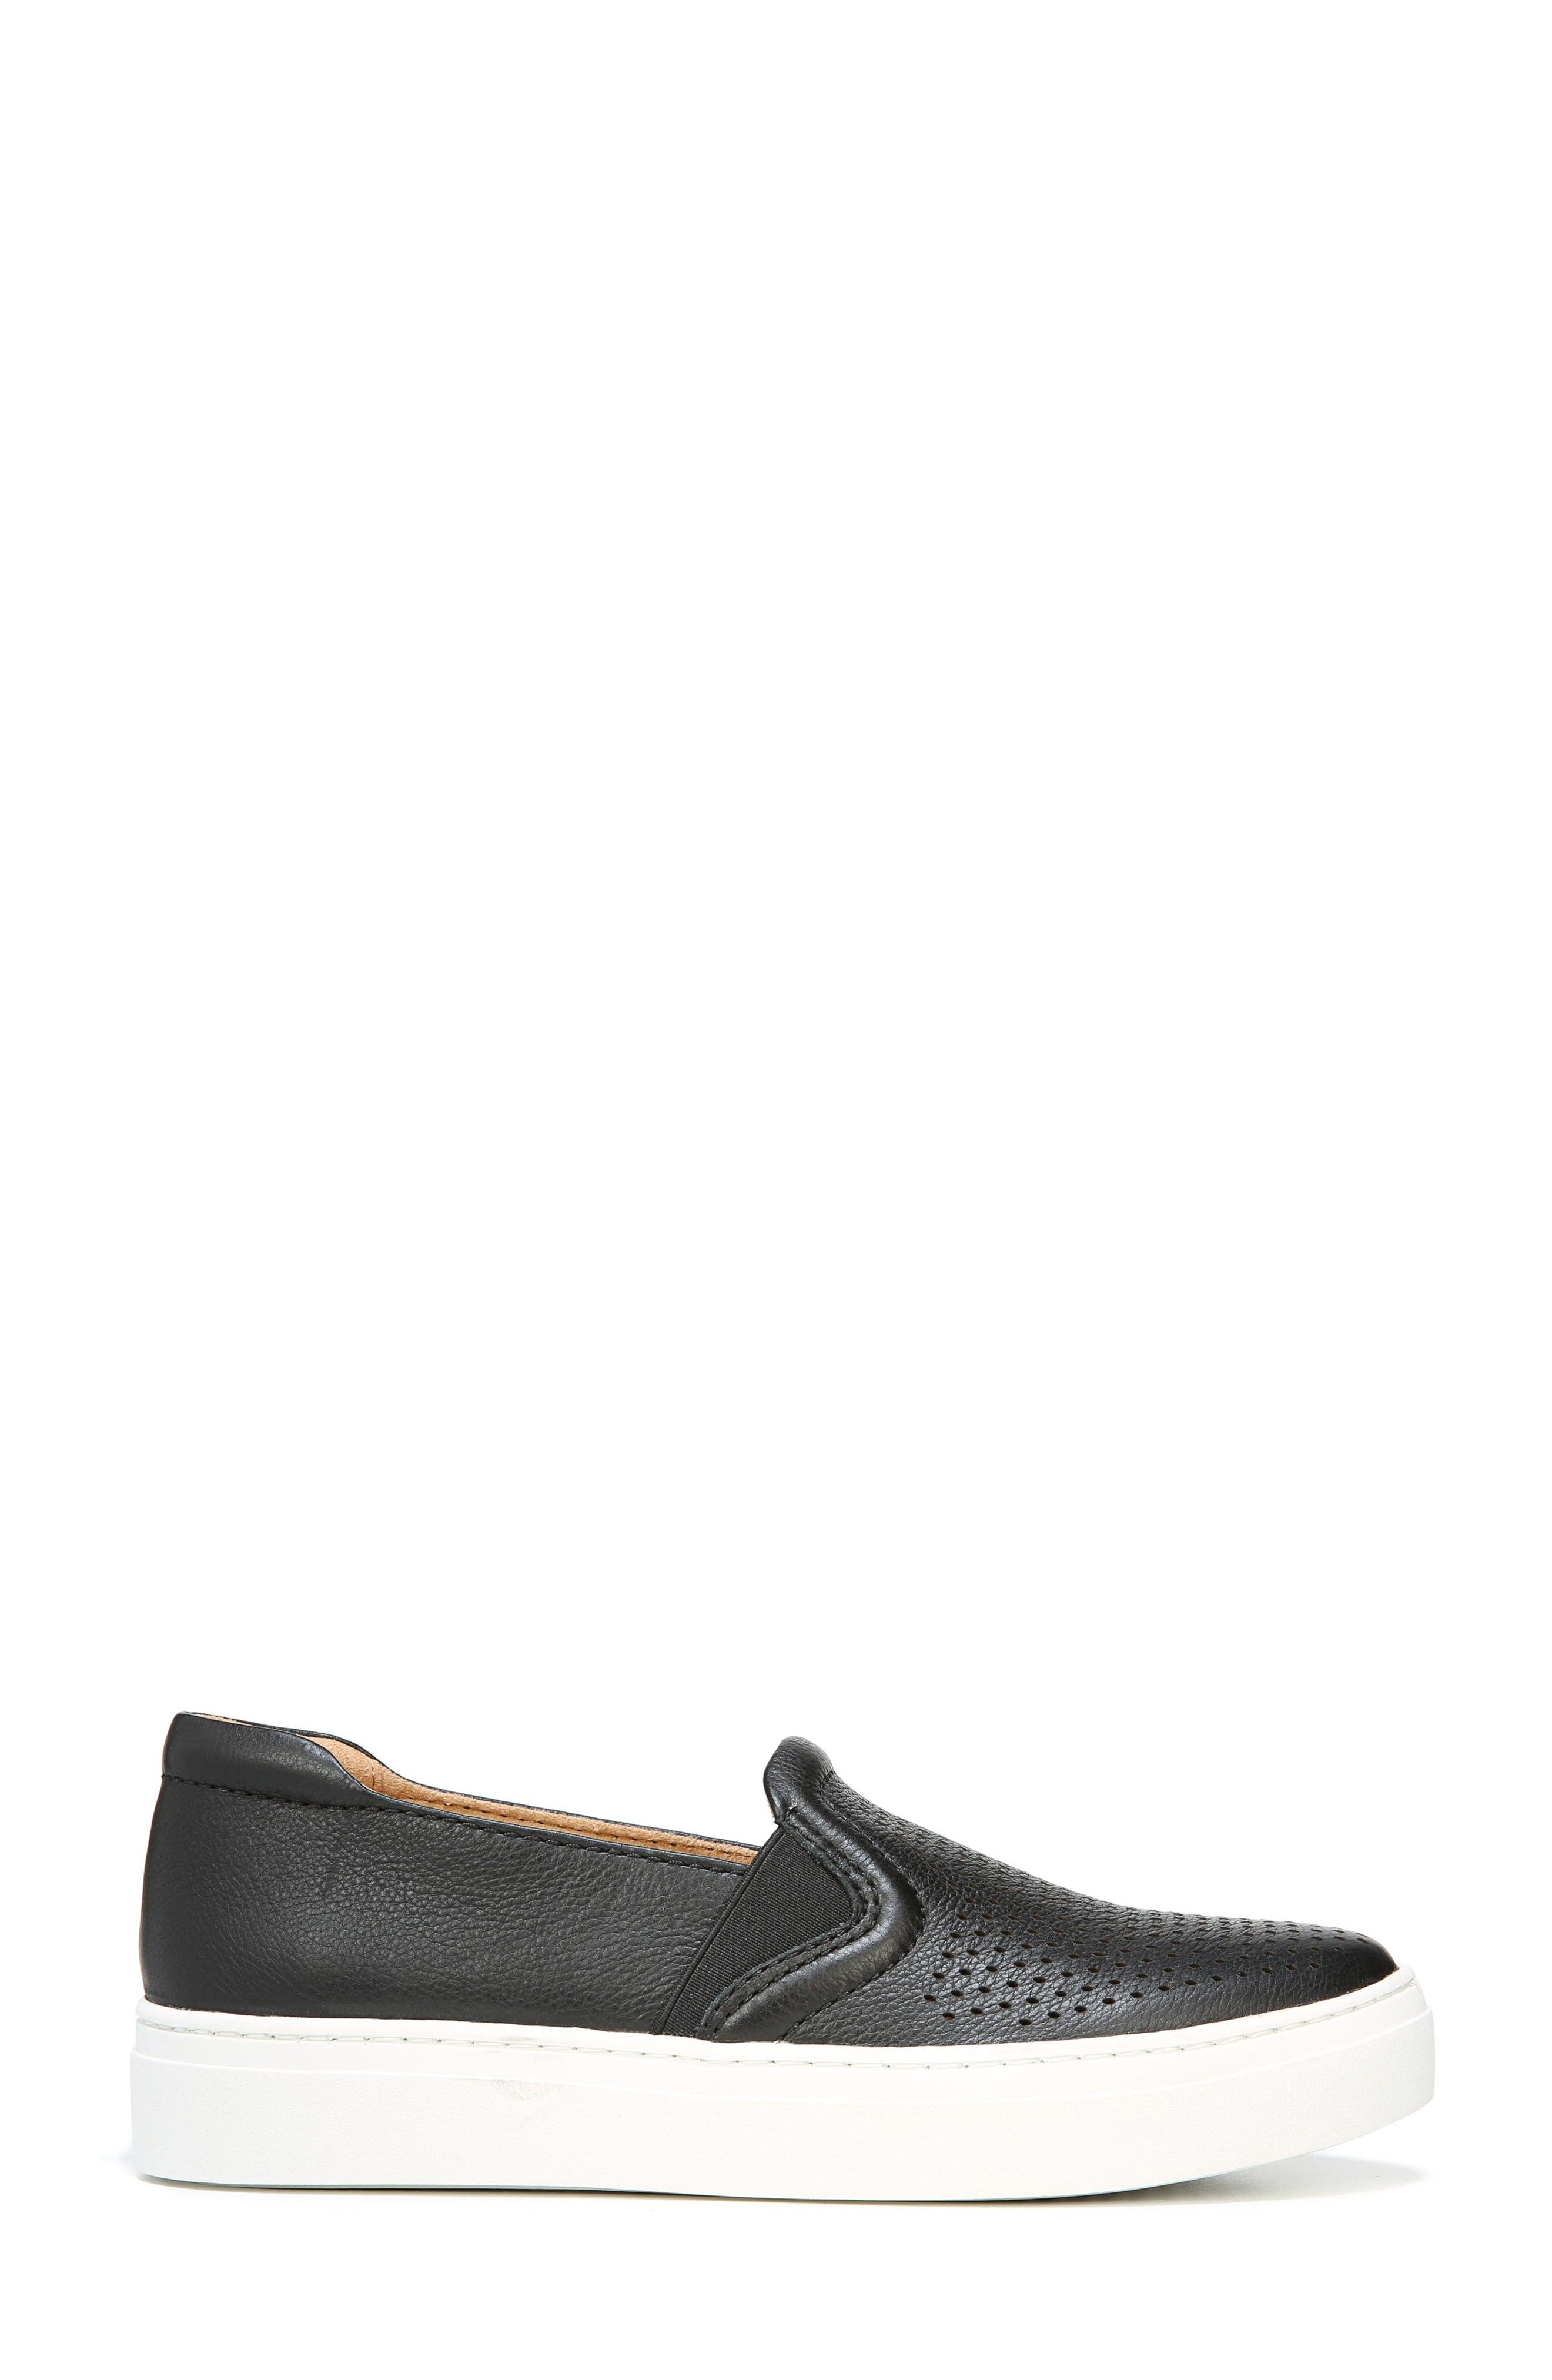 Carly Slip-On Sneaker,                             Alternate thumbnail 3, color,                             BLACK PEBBLED LEATHER